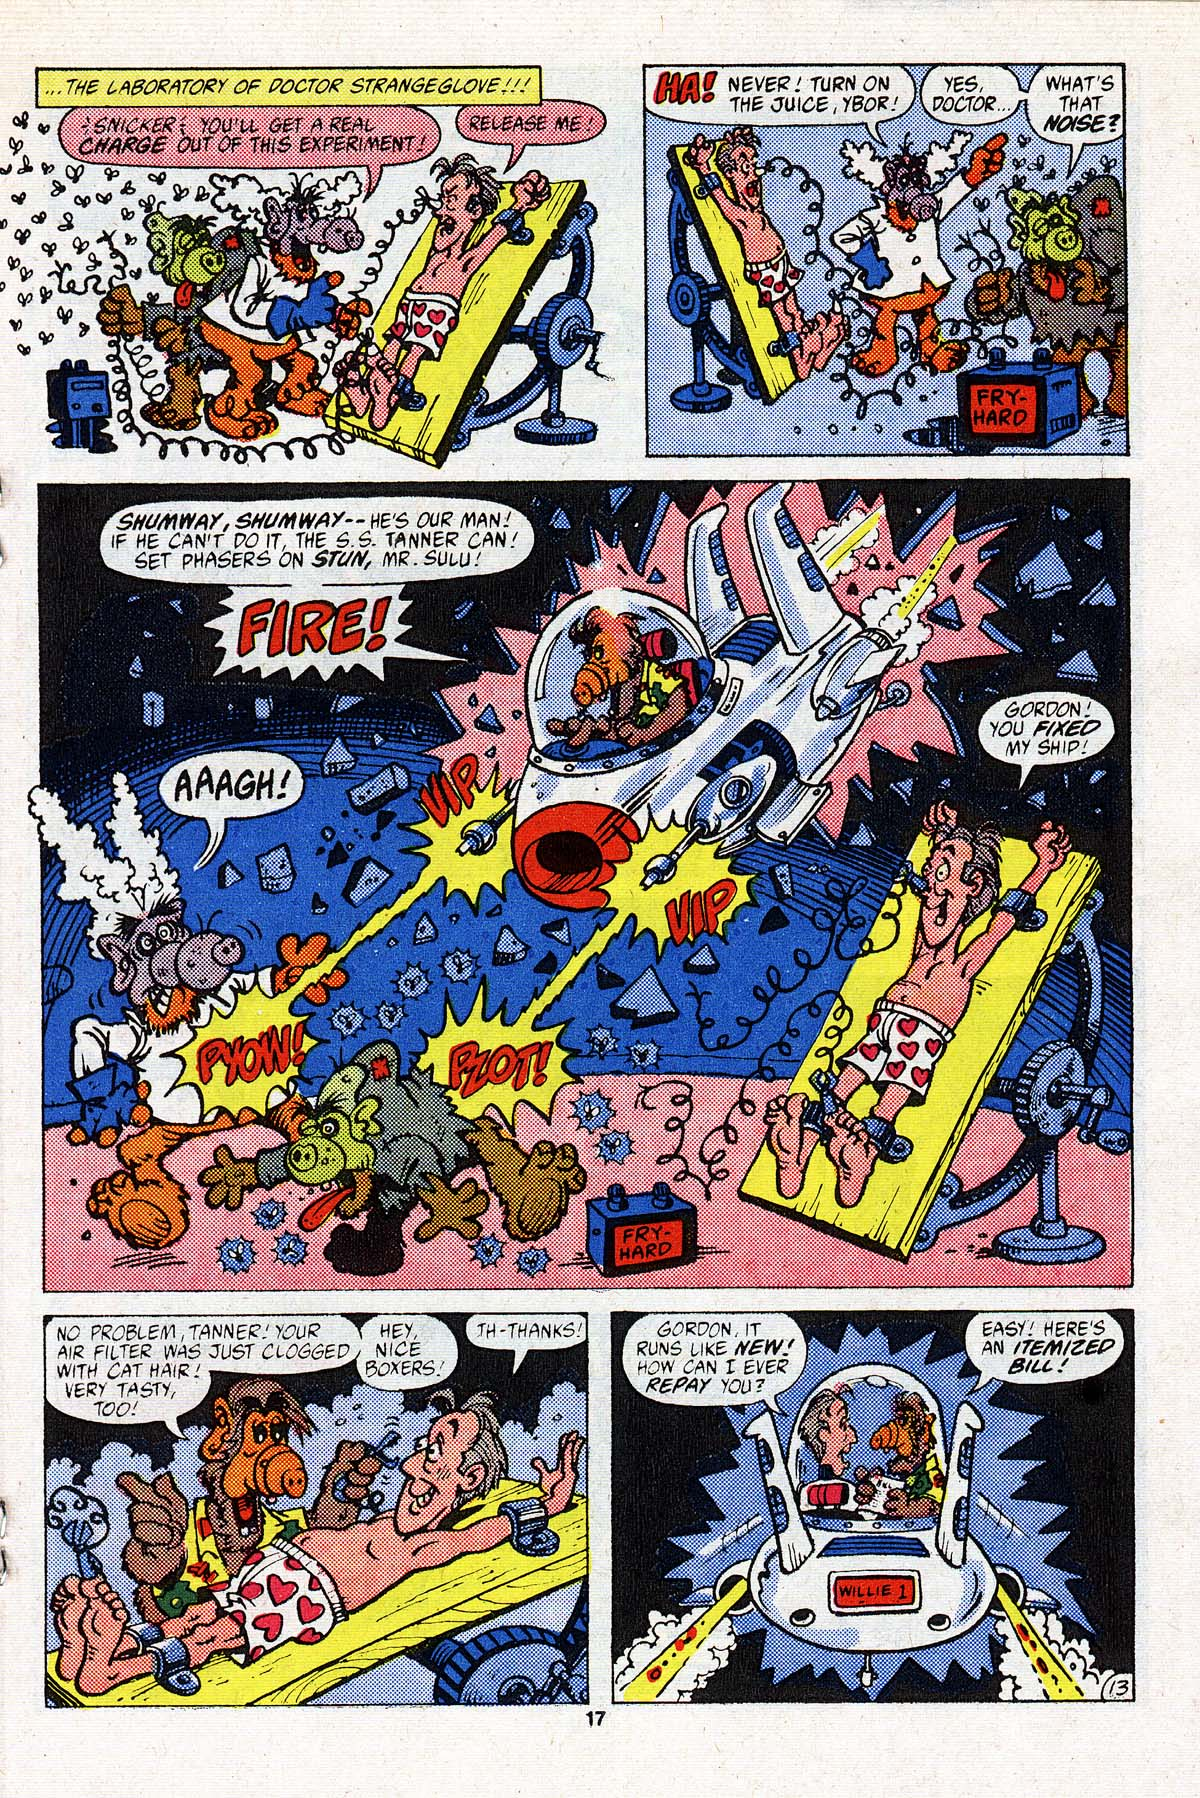 Read online ALF comic -  Issue #3 - 14